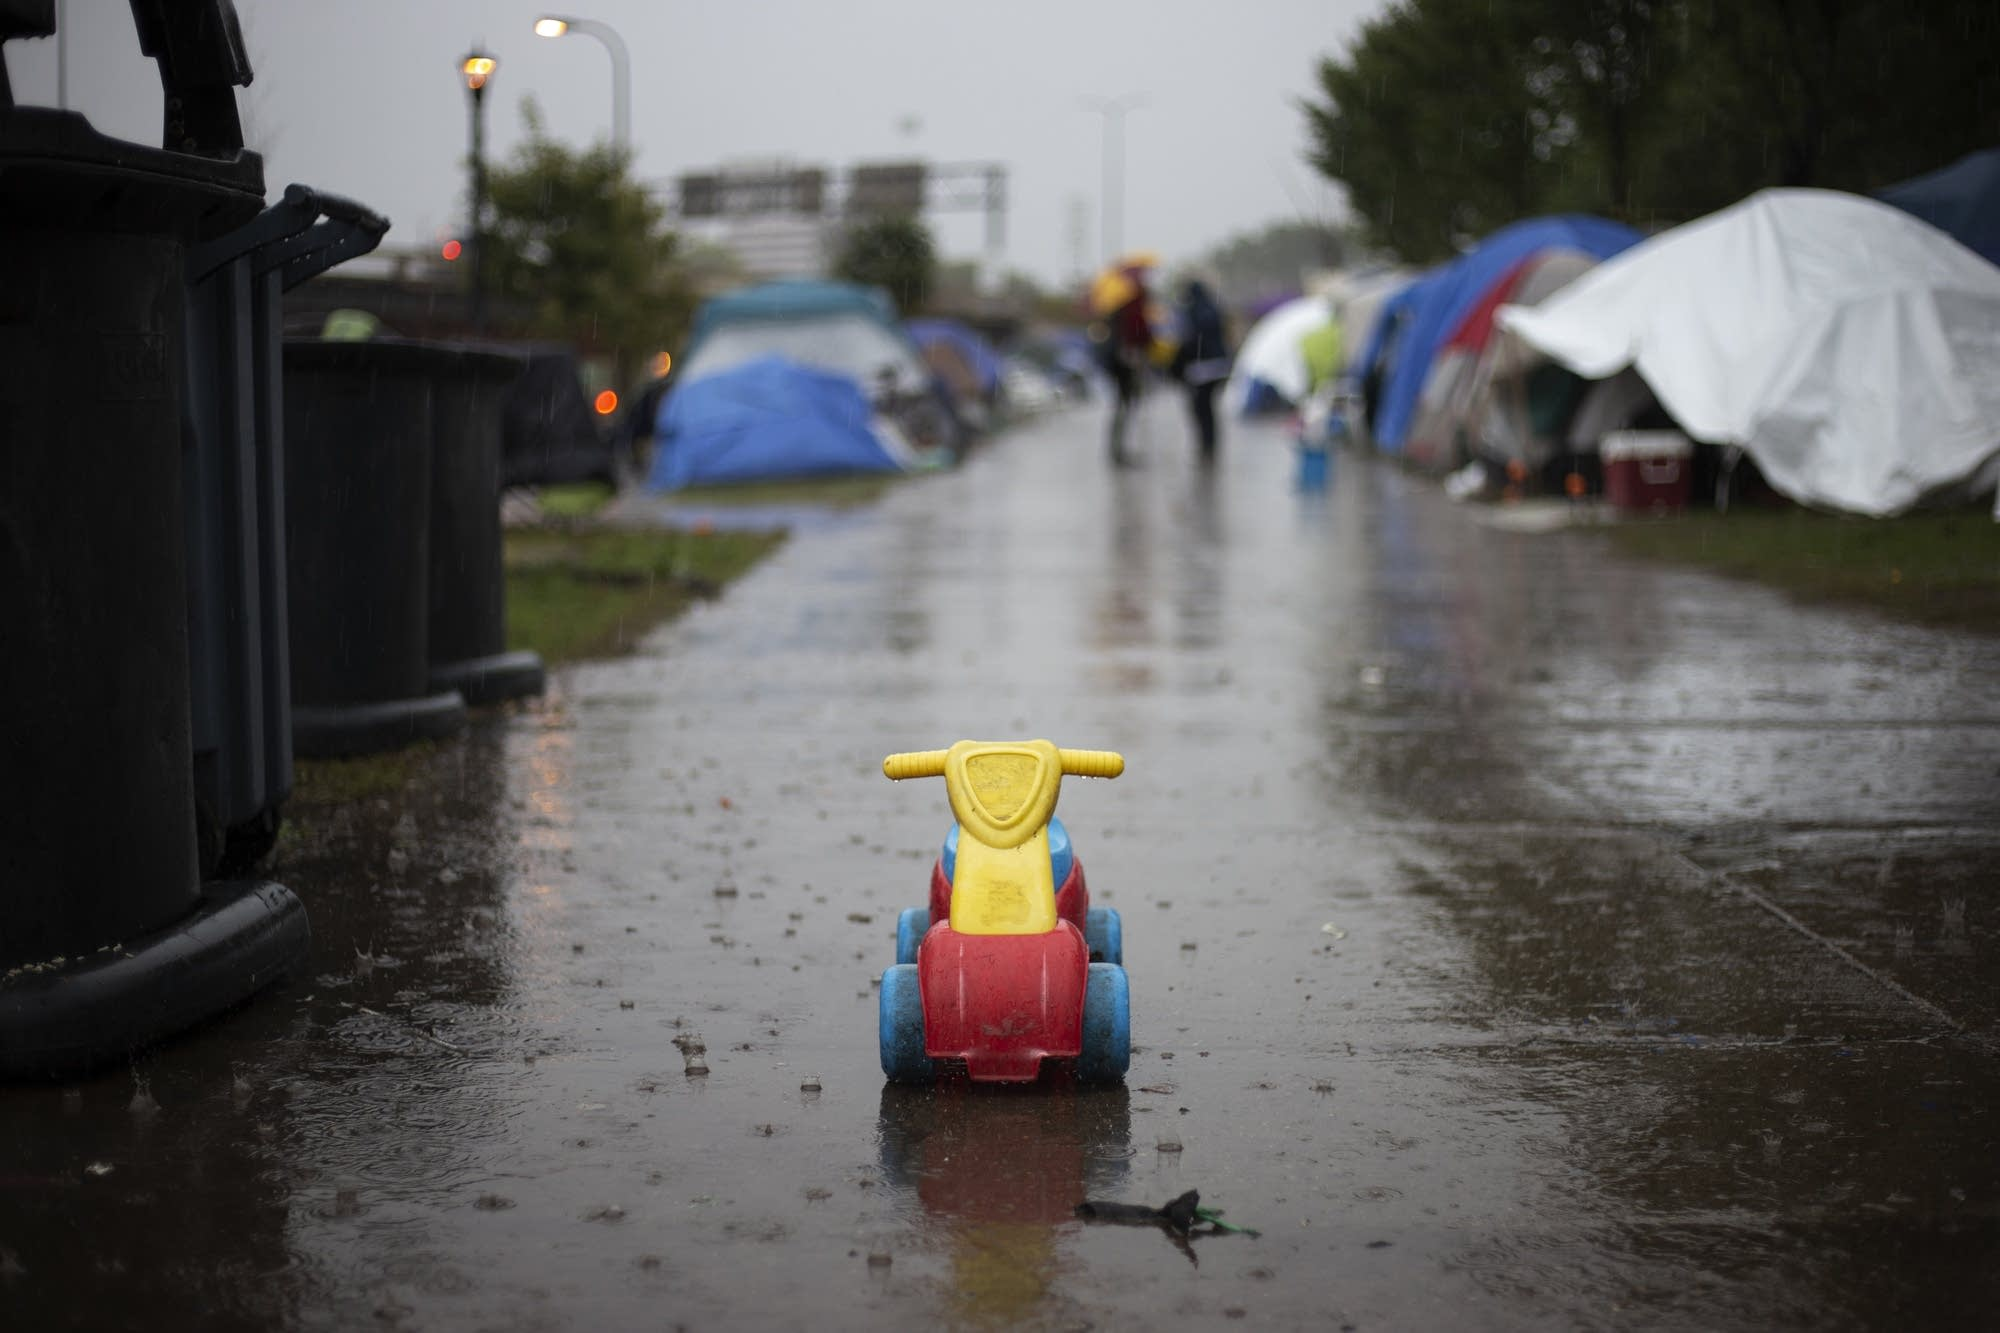 A toy rolls down the sidewalk in the rain at the homeless encampment